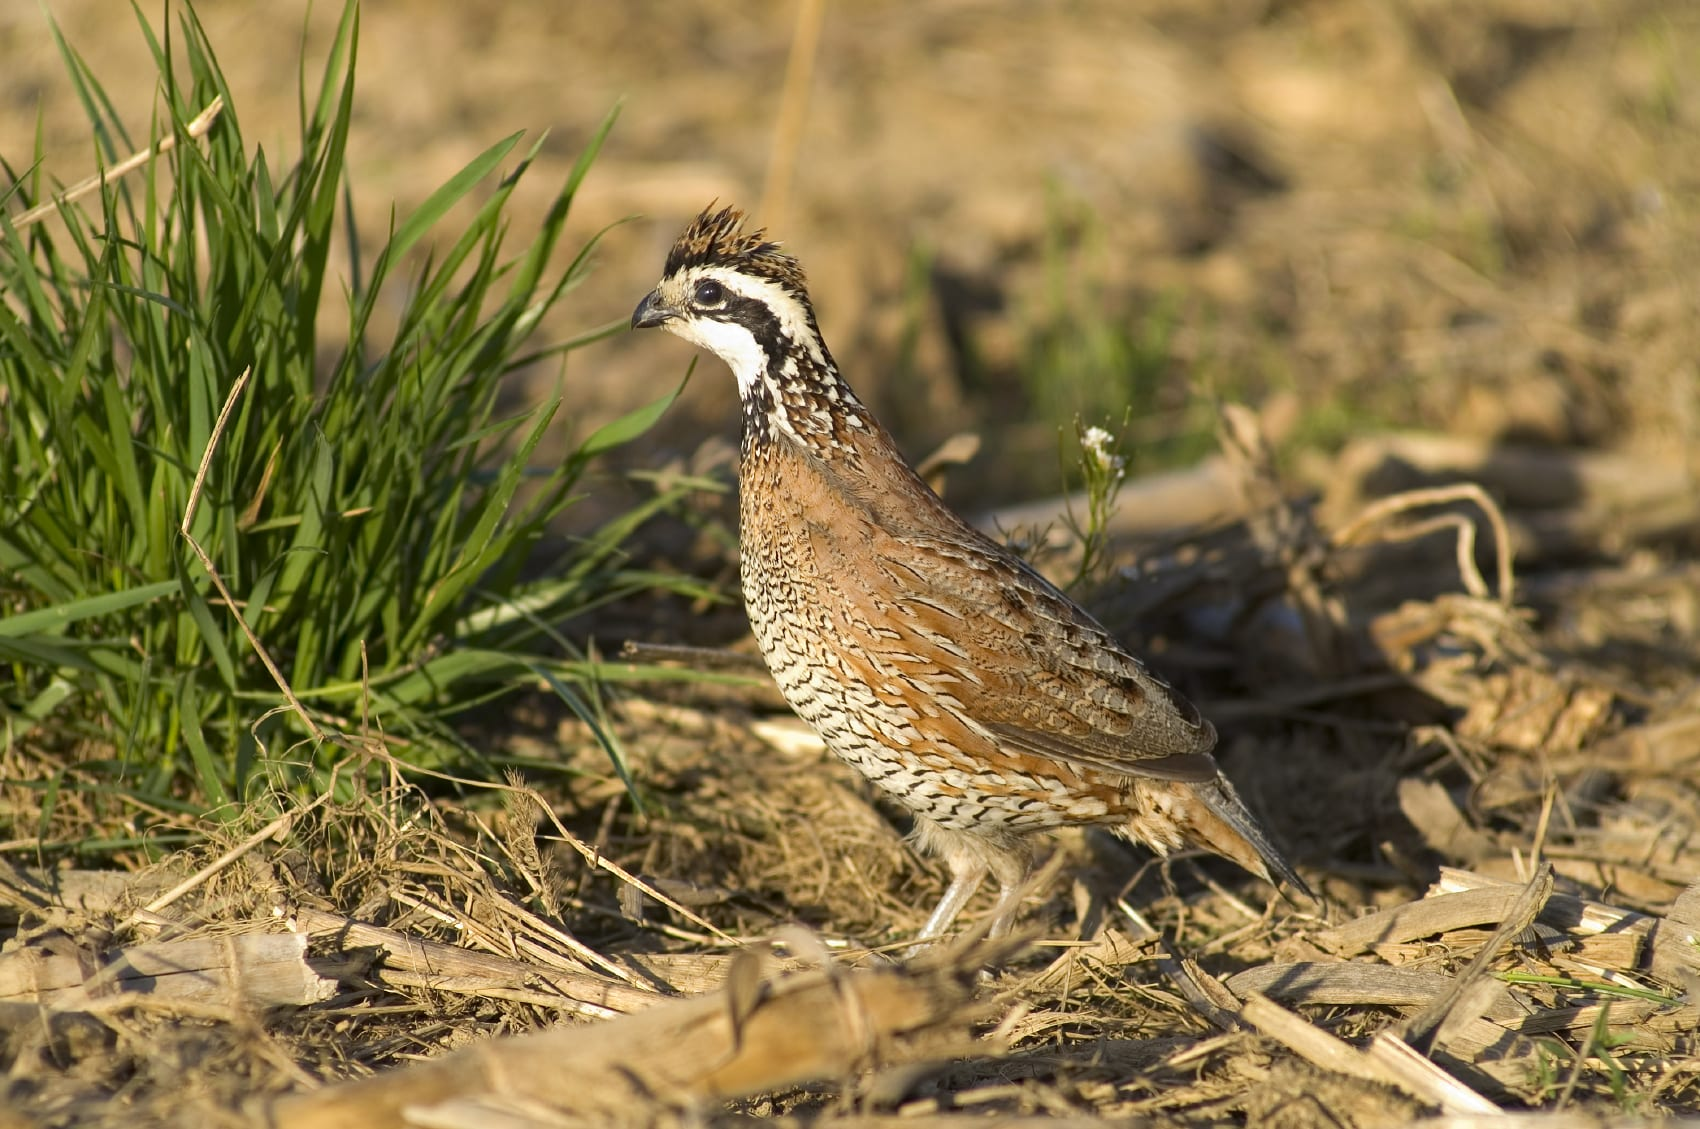 Bobwhite quail are one of Alabama's most sought after gamebirds.